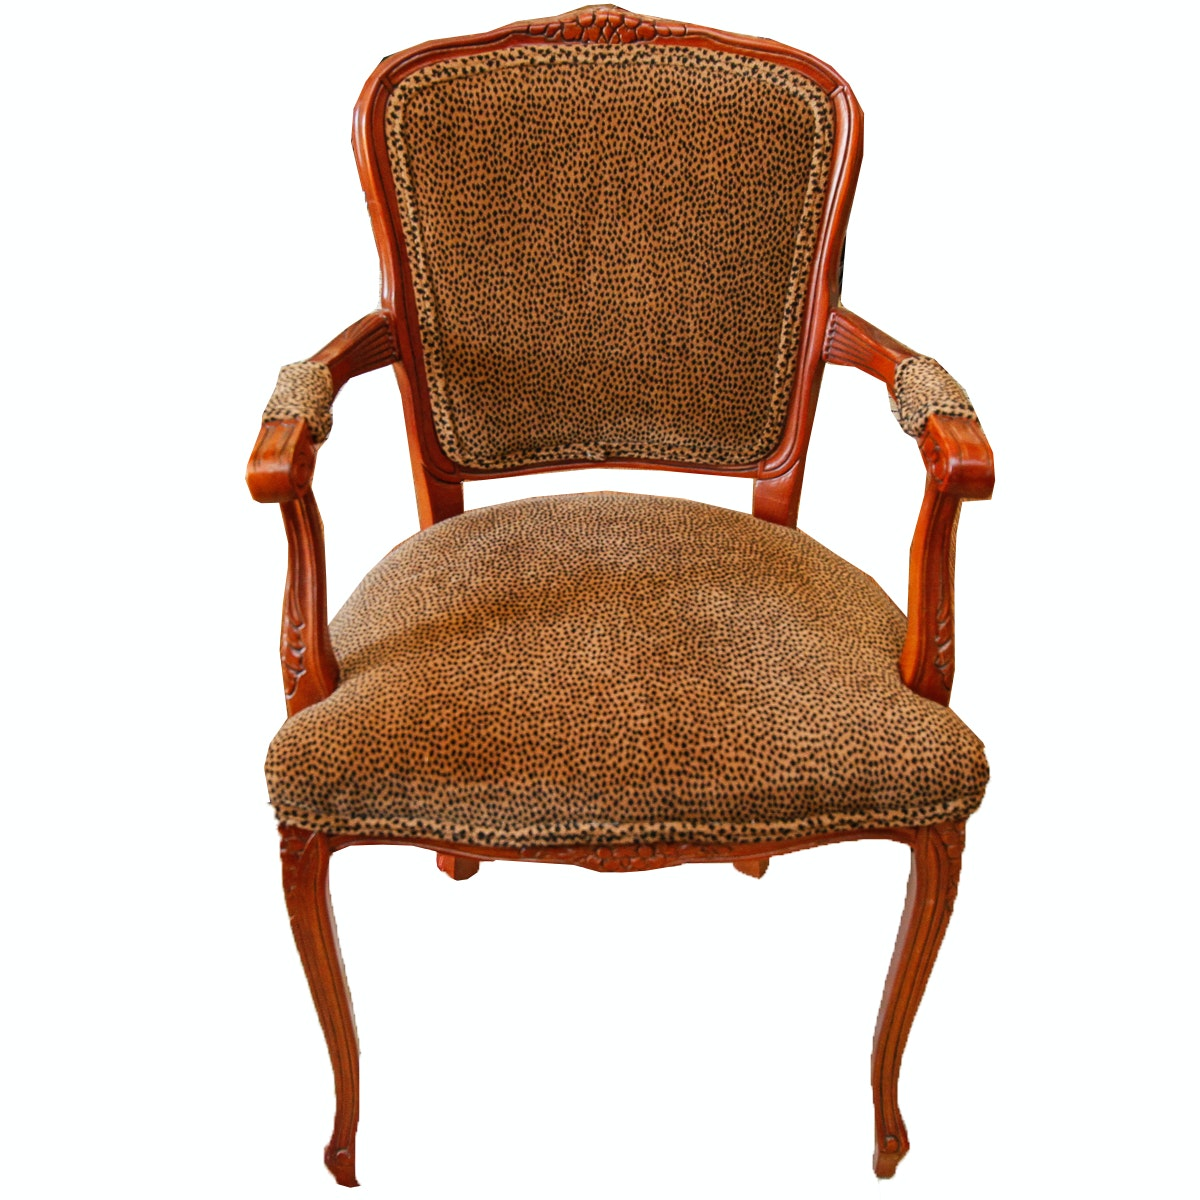 Louis XV Style Fauteuil Accent Chair with Velour Upholstery